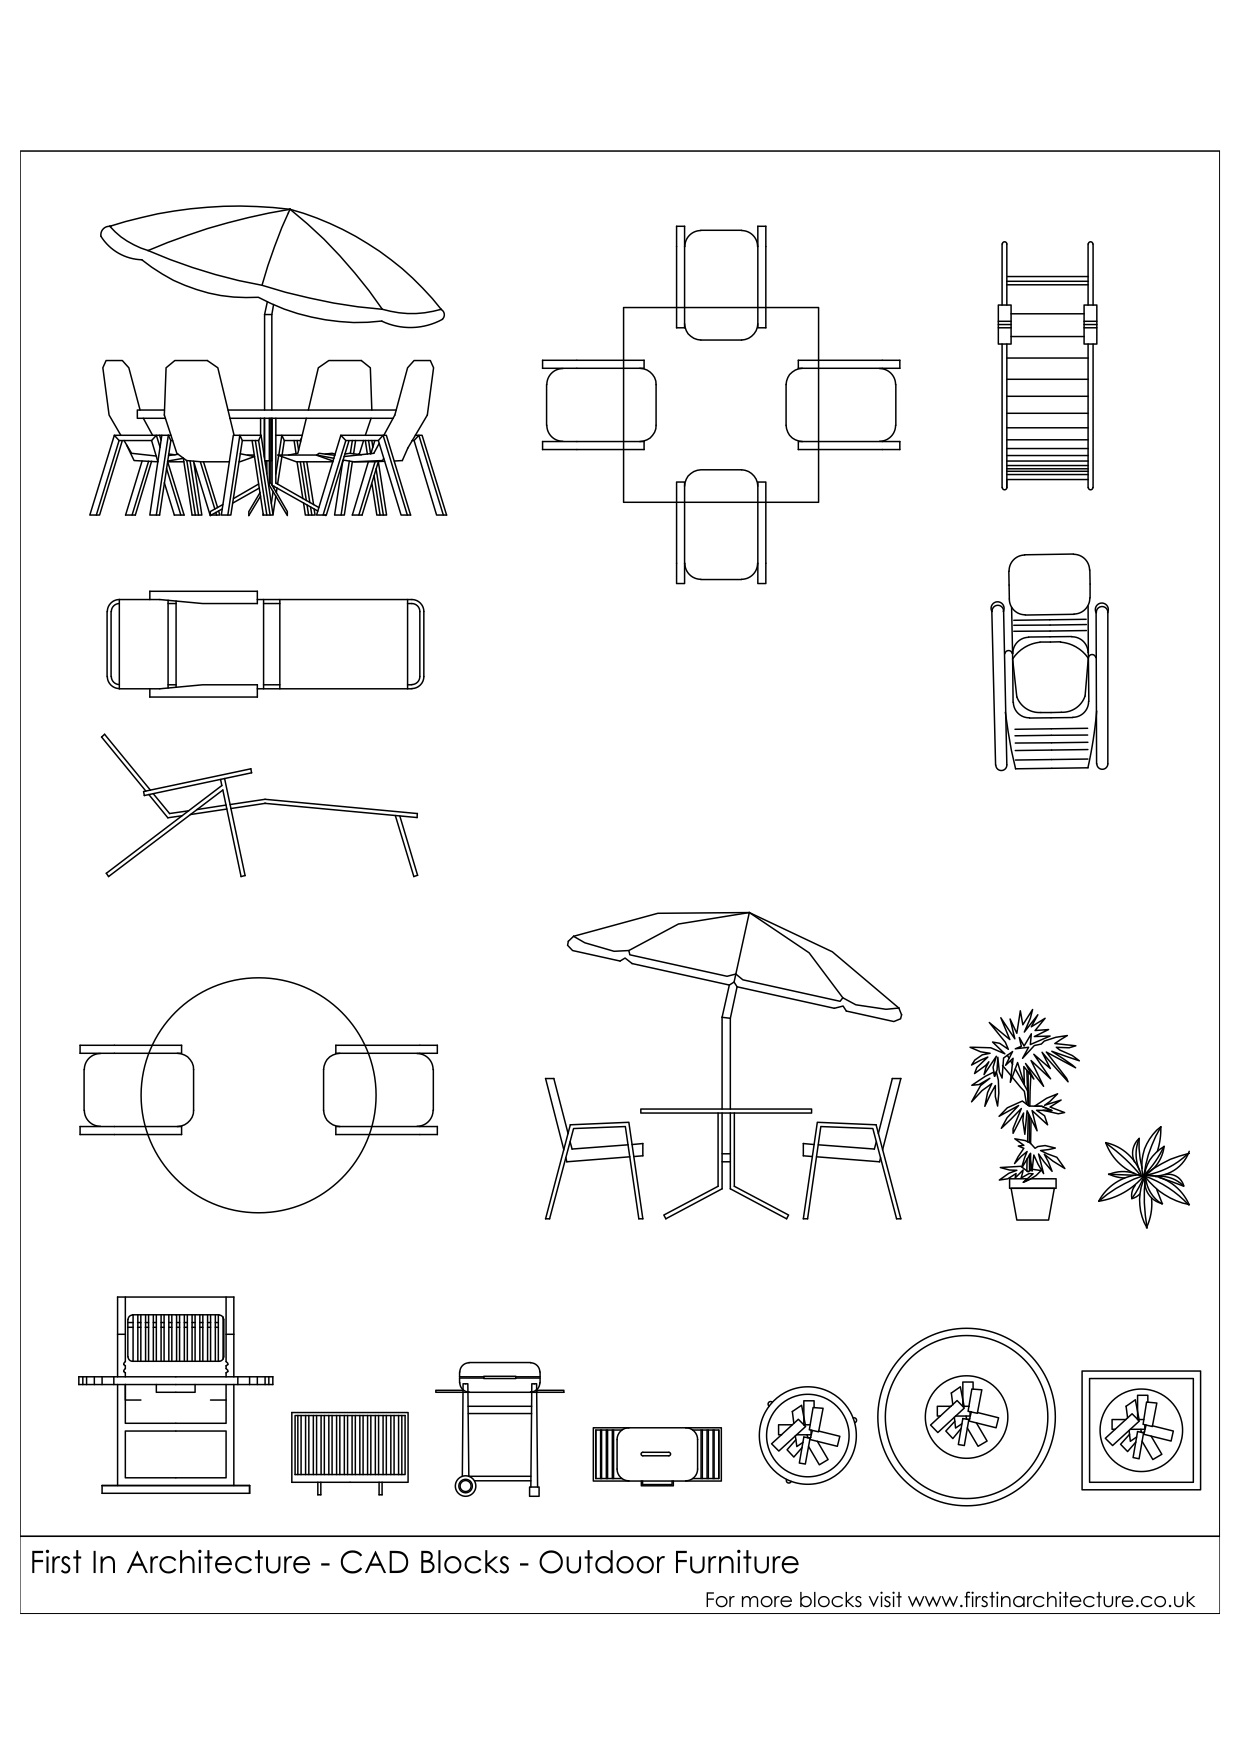 FIA-CAD-Blocks-outdoor-Furniture.jpg?fit=849%2C1200